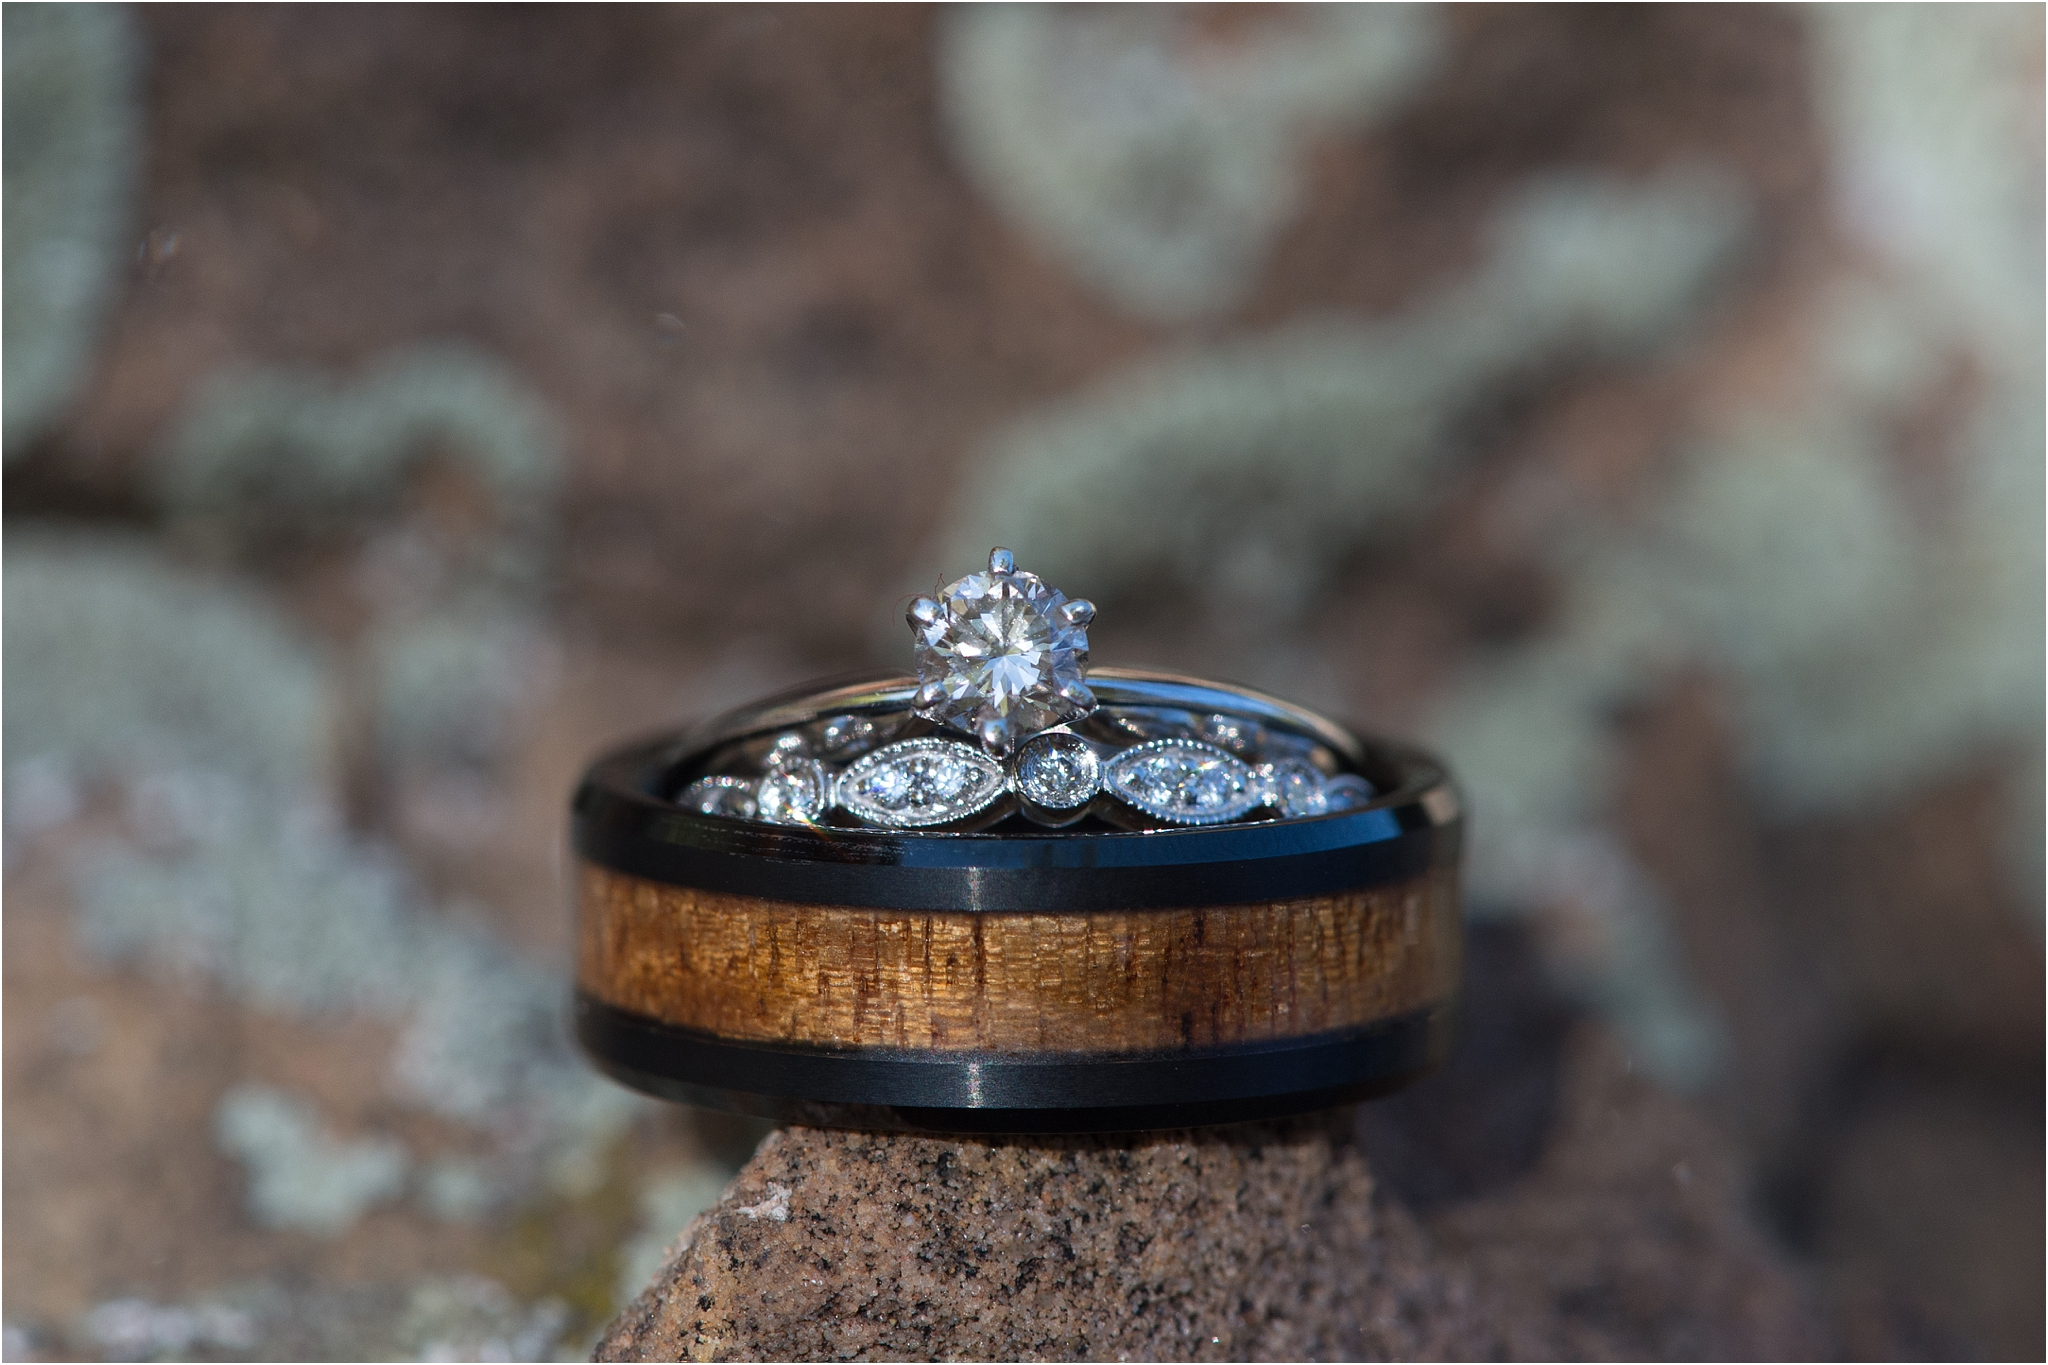 kayla kitts photography - albuquerque wedding photographer - hairpins and scissors - a cake odyssey - new mexico wedding photographer_0013.jpg